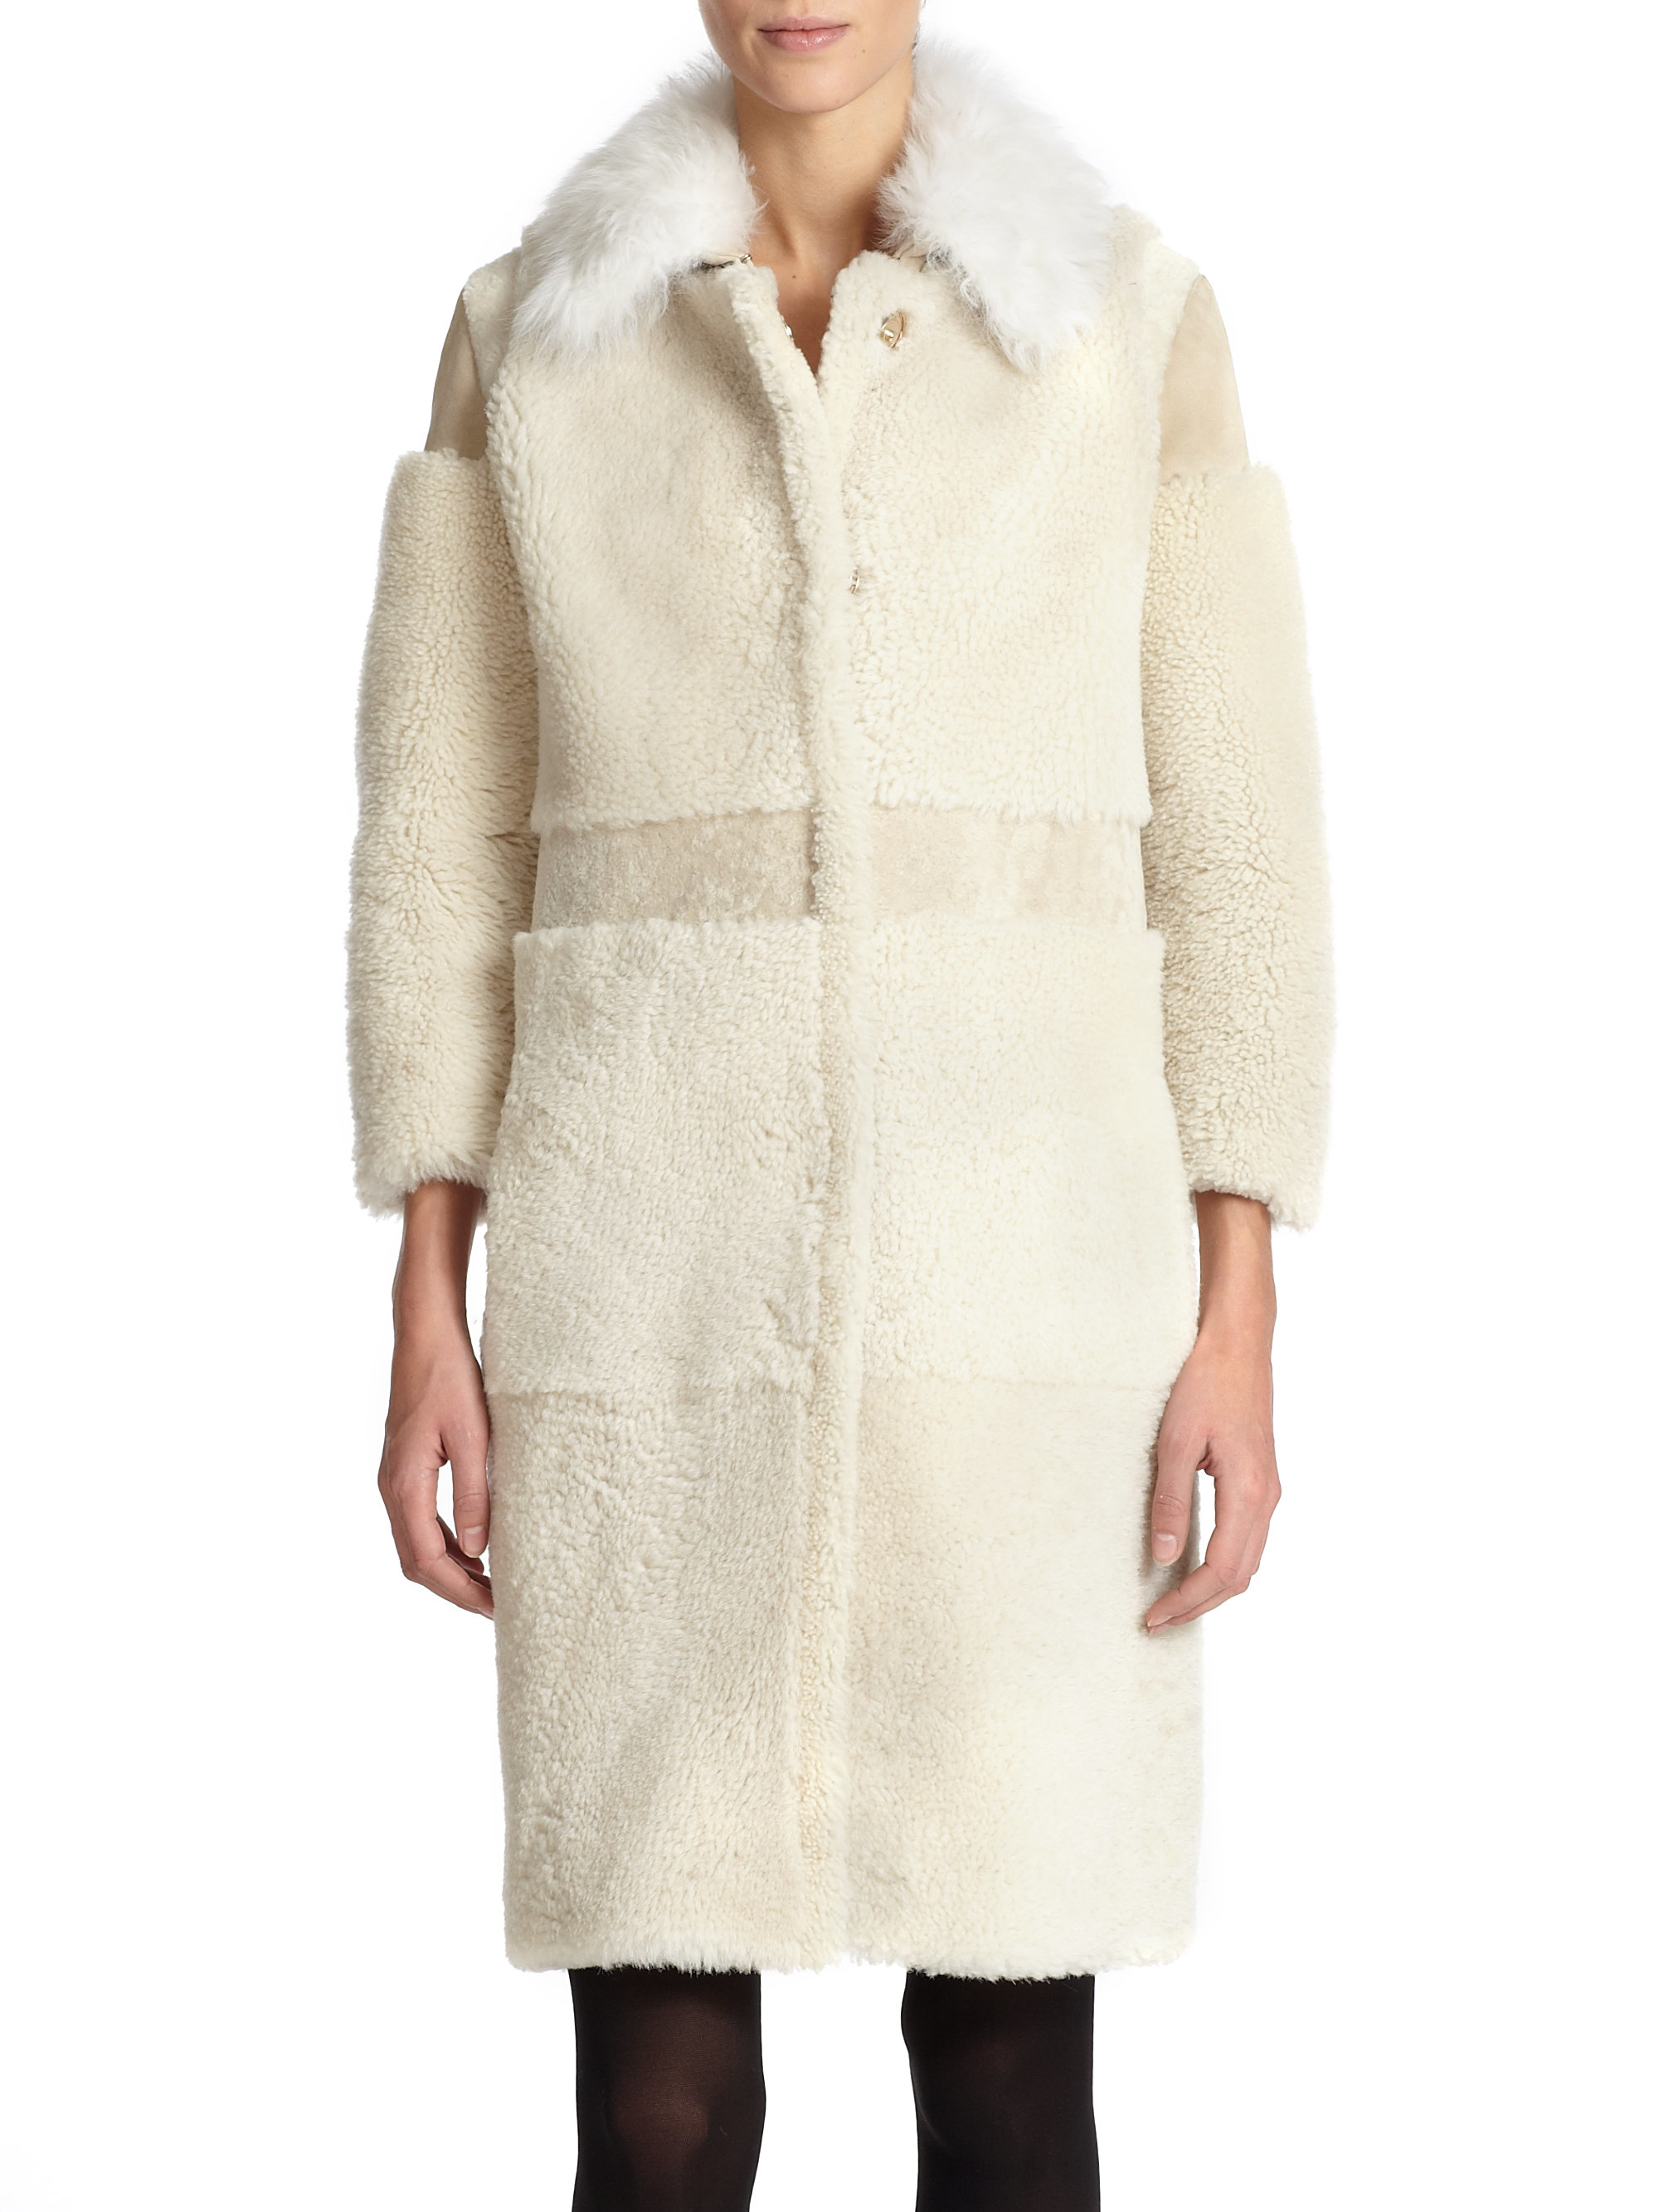 Burberry prorsum Shearling Patchwork Coat in White | Lyst